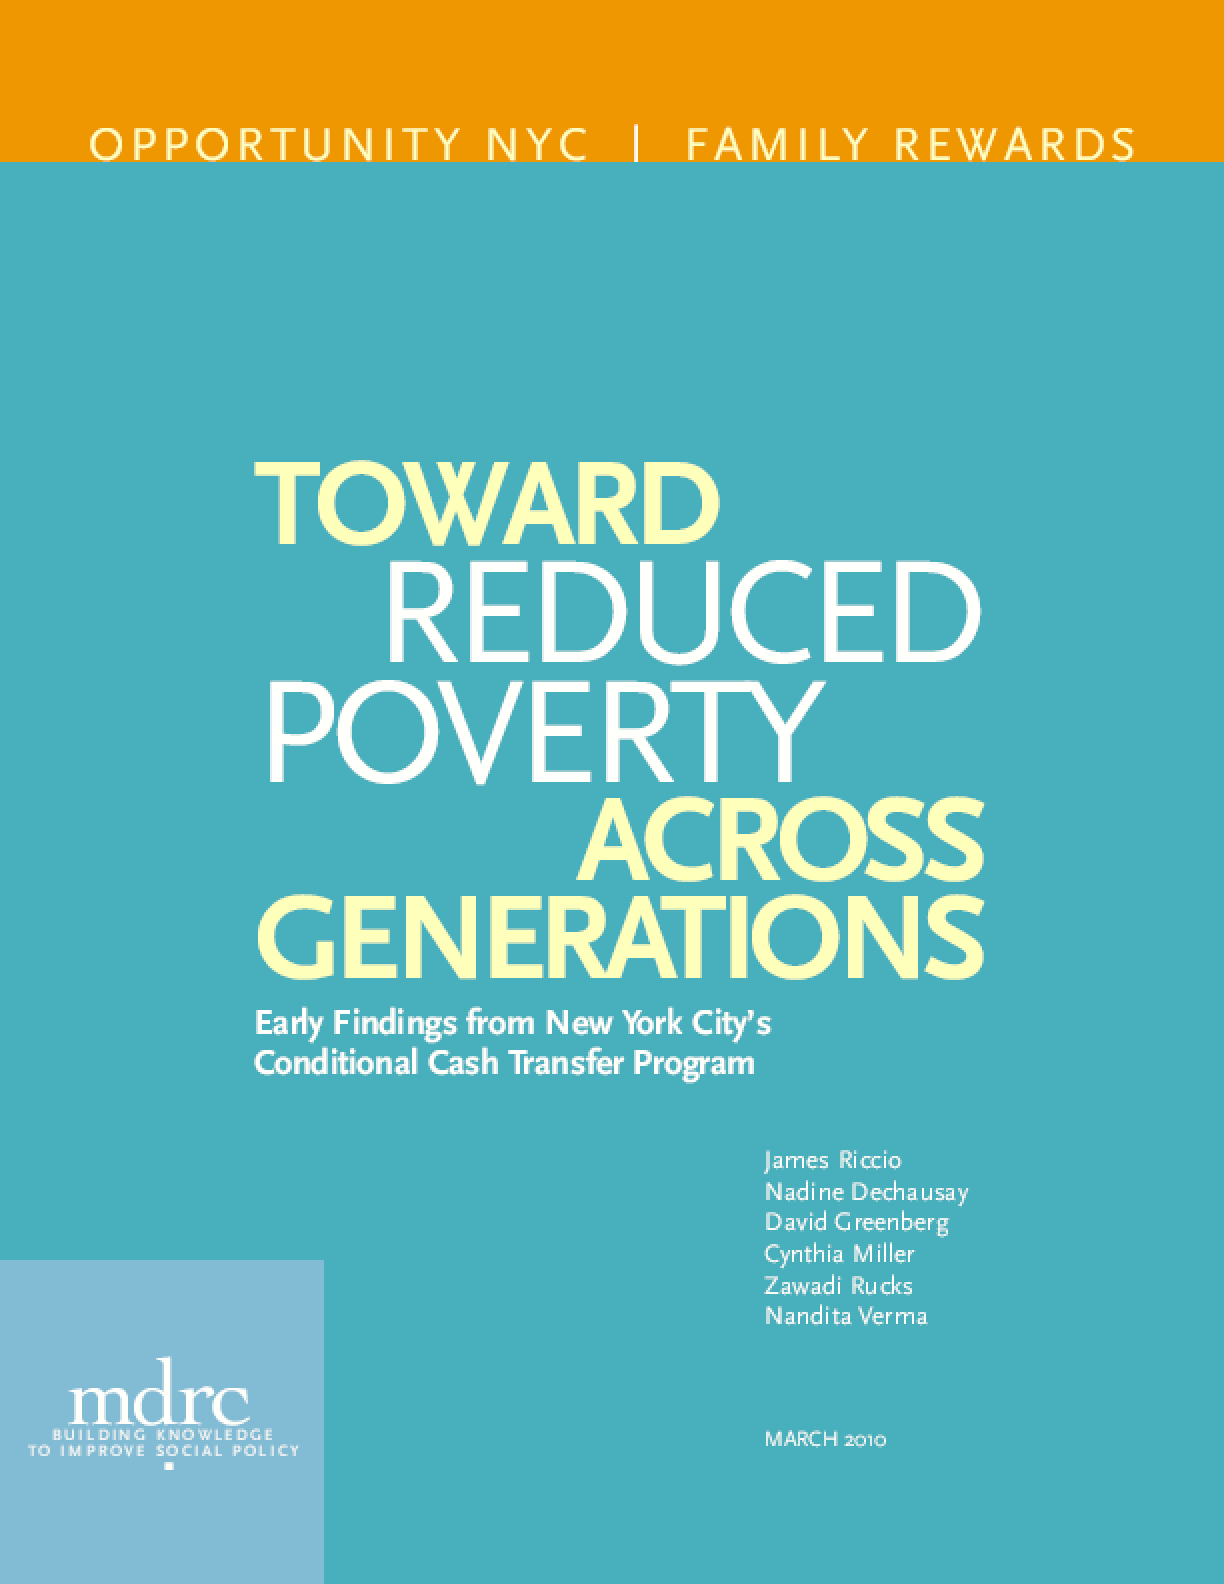 Toward Reduced Poverty Across Generations: Early Findings from New York City's Conditional Cash Transfer Program